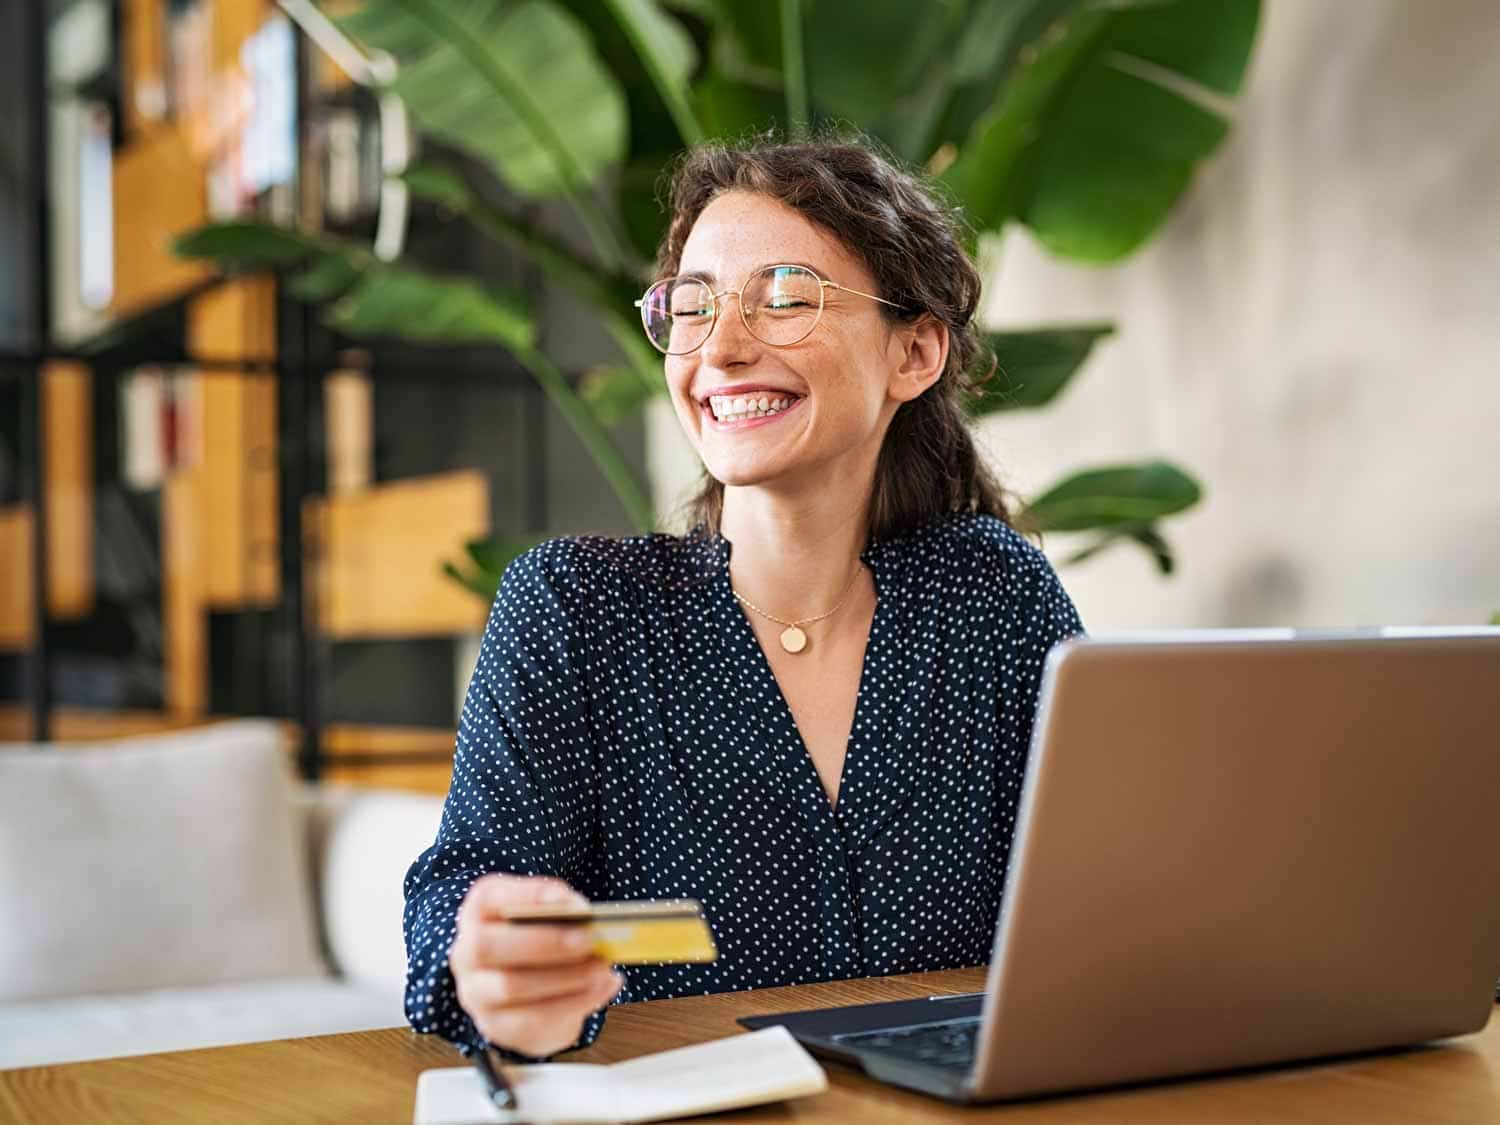 woman-with-laptop-using-credit-card